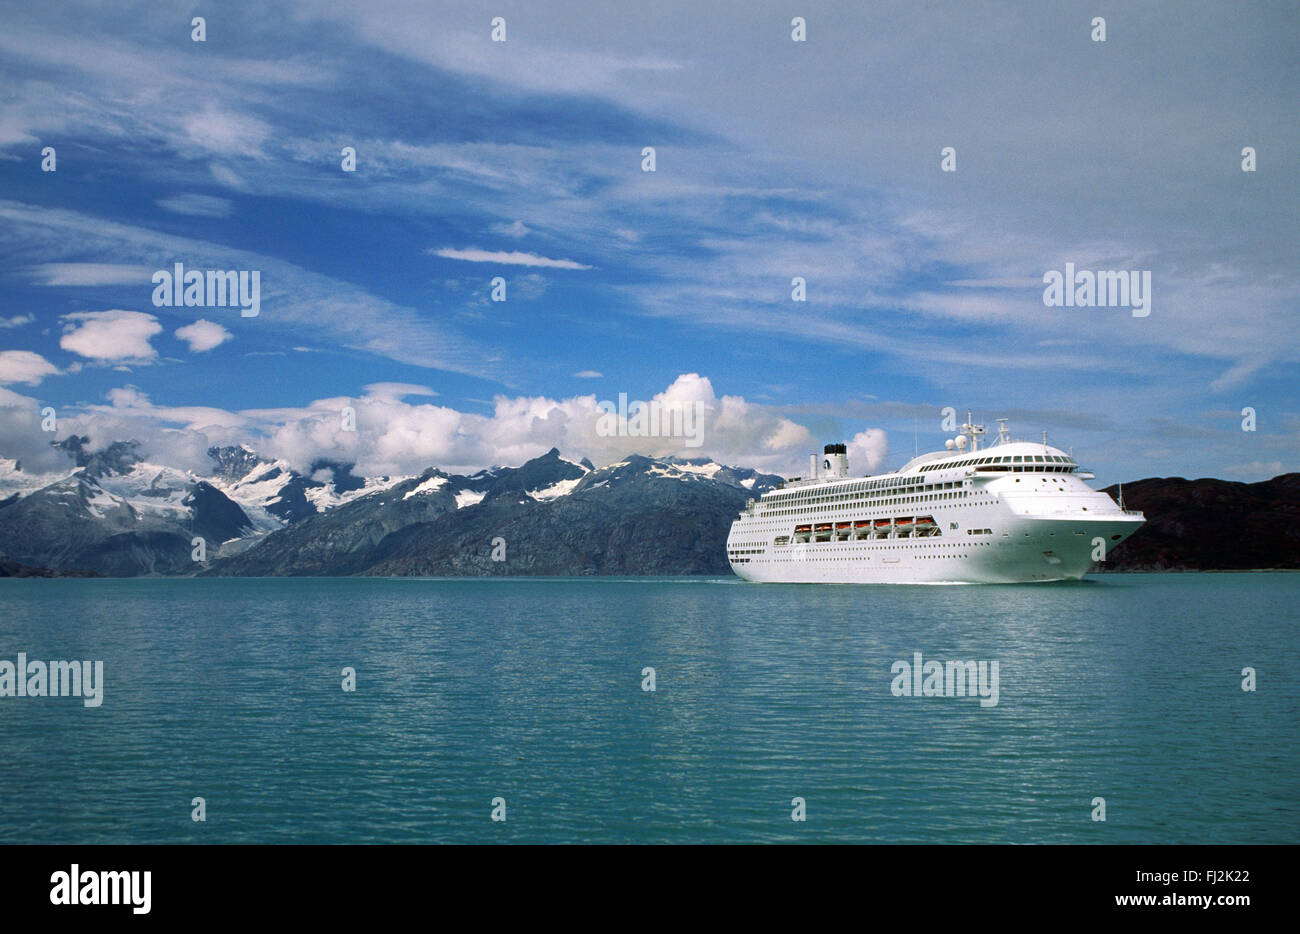 A P&O CRUISE SHIP plies the waters of GLACIER BAY NATIONAL PARK - ALASKA - Stock Image